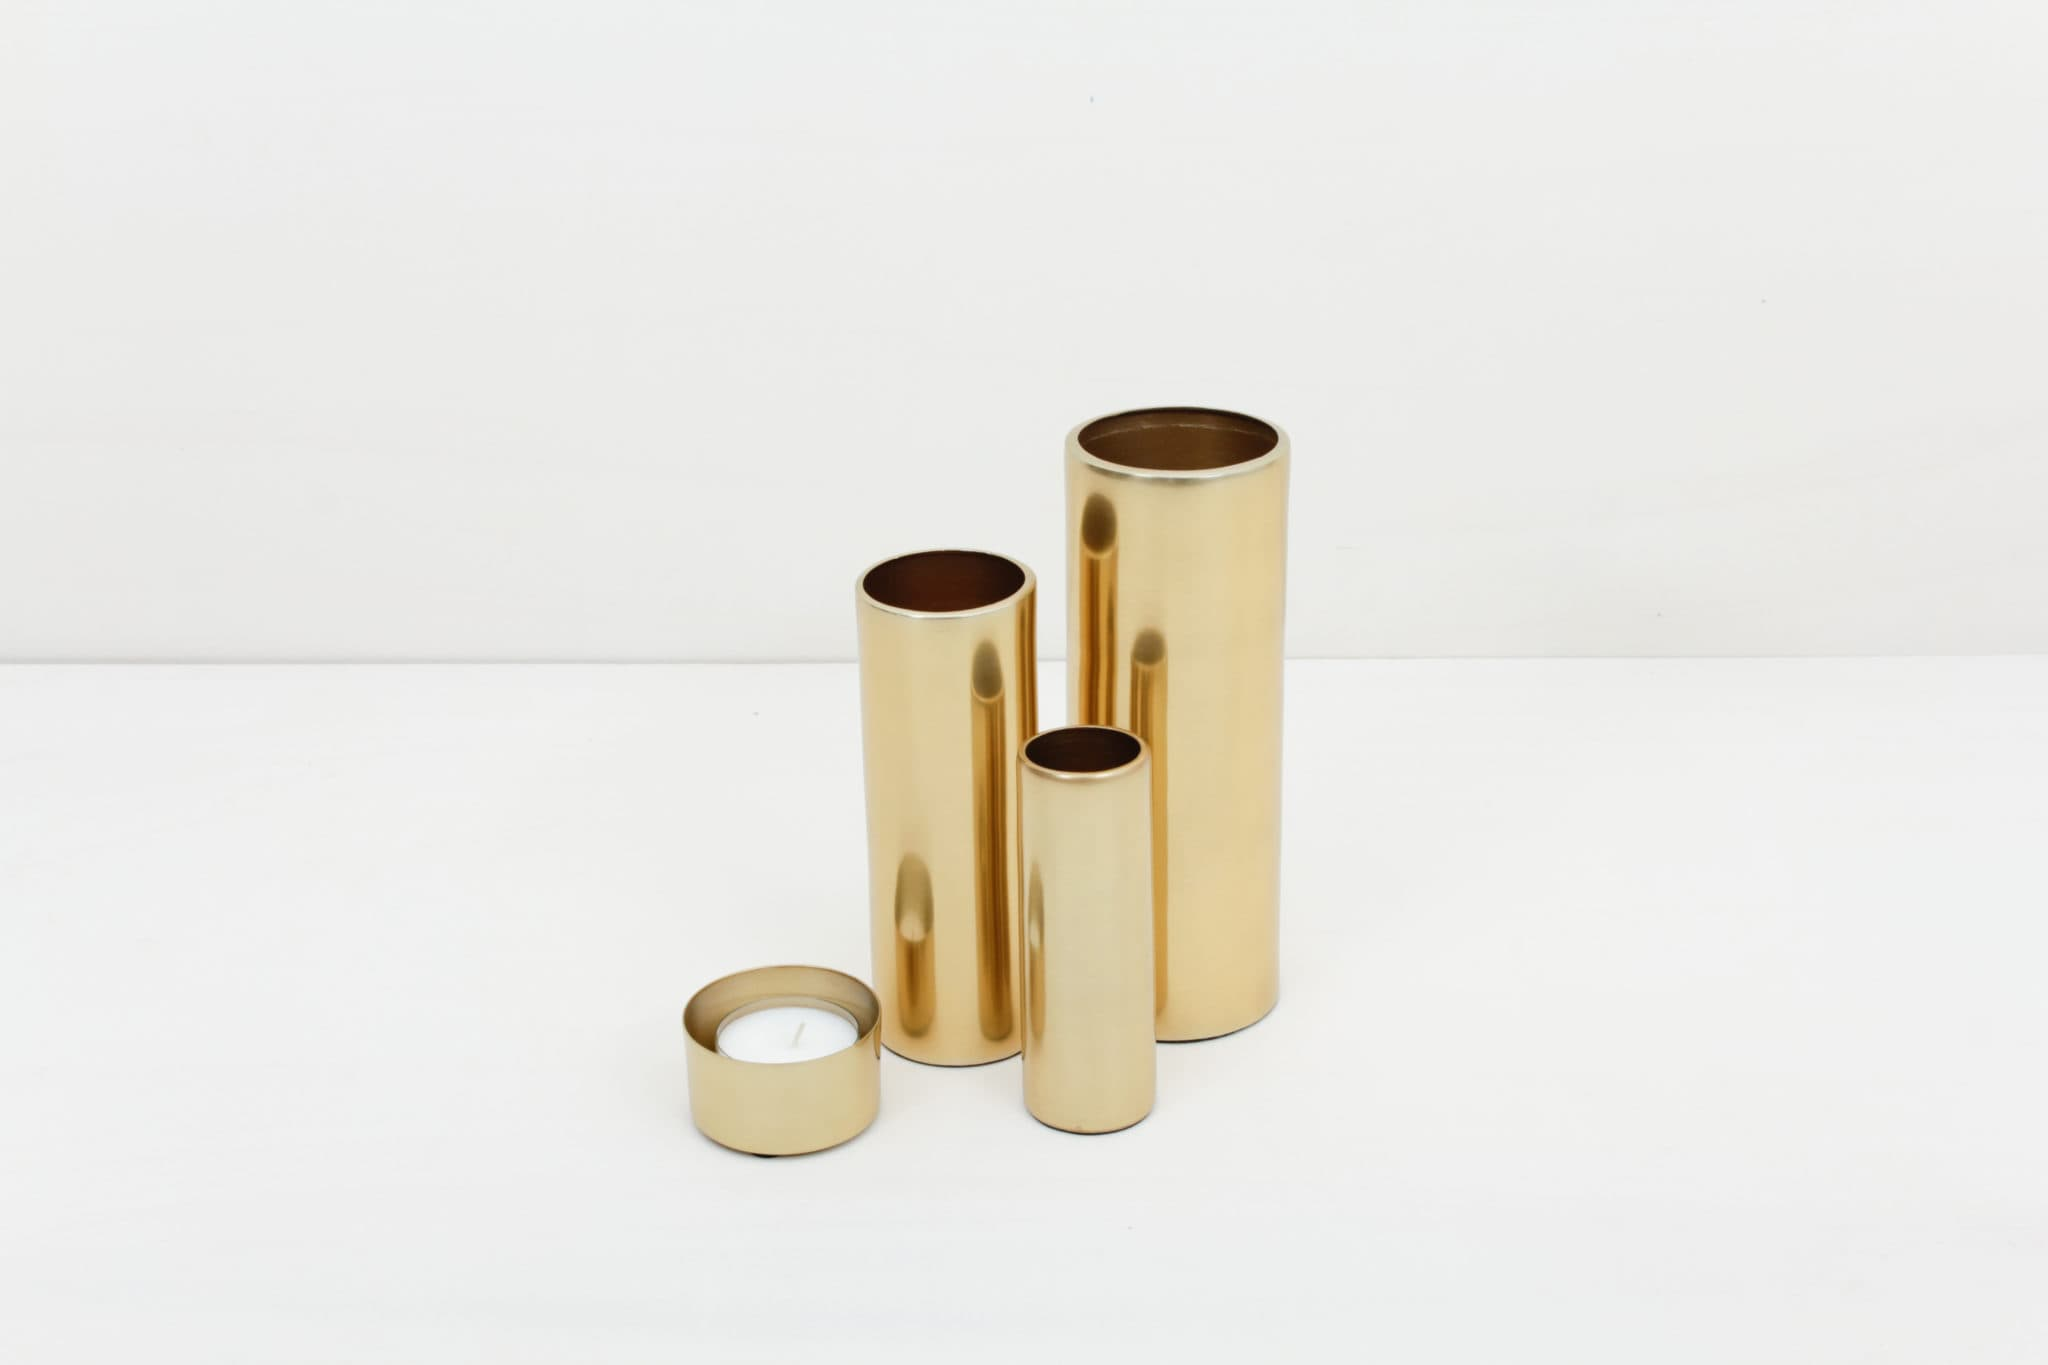 Tea Light Elisa Brass | Brass matt golden tea light. Without candle, please order separately.